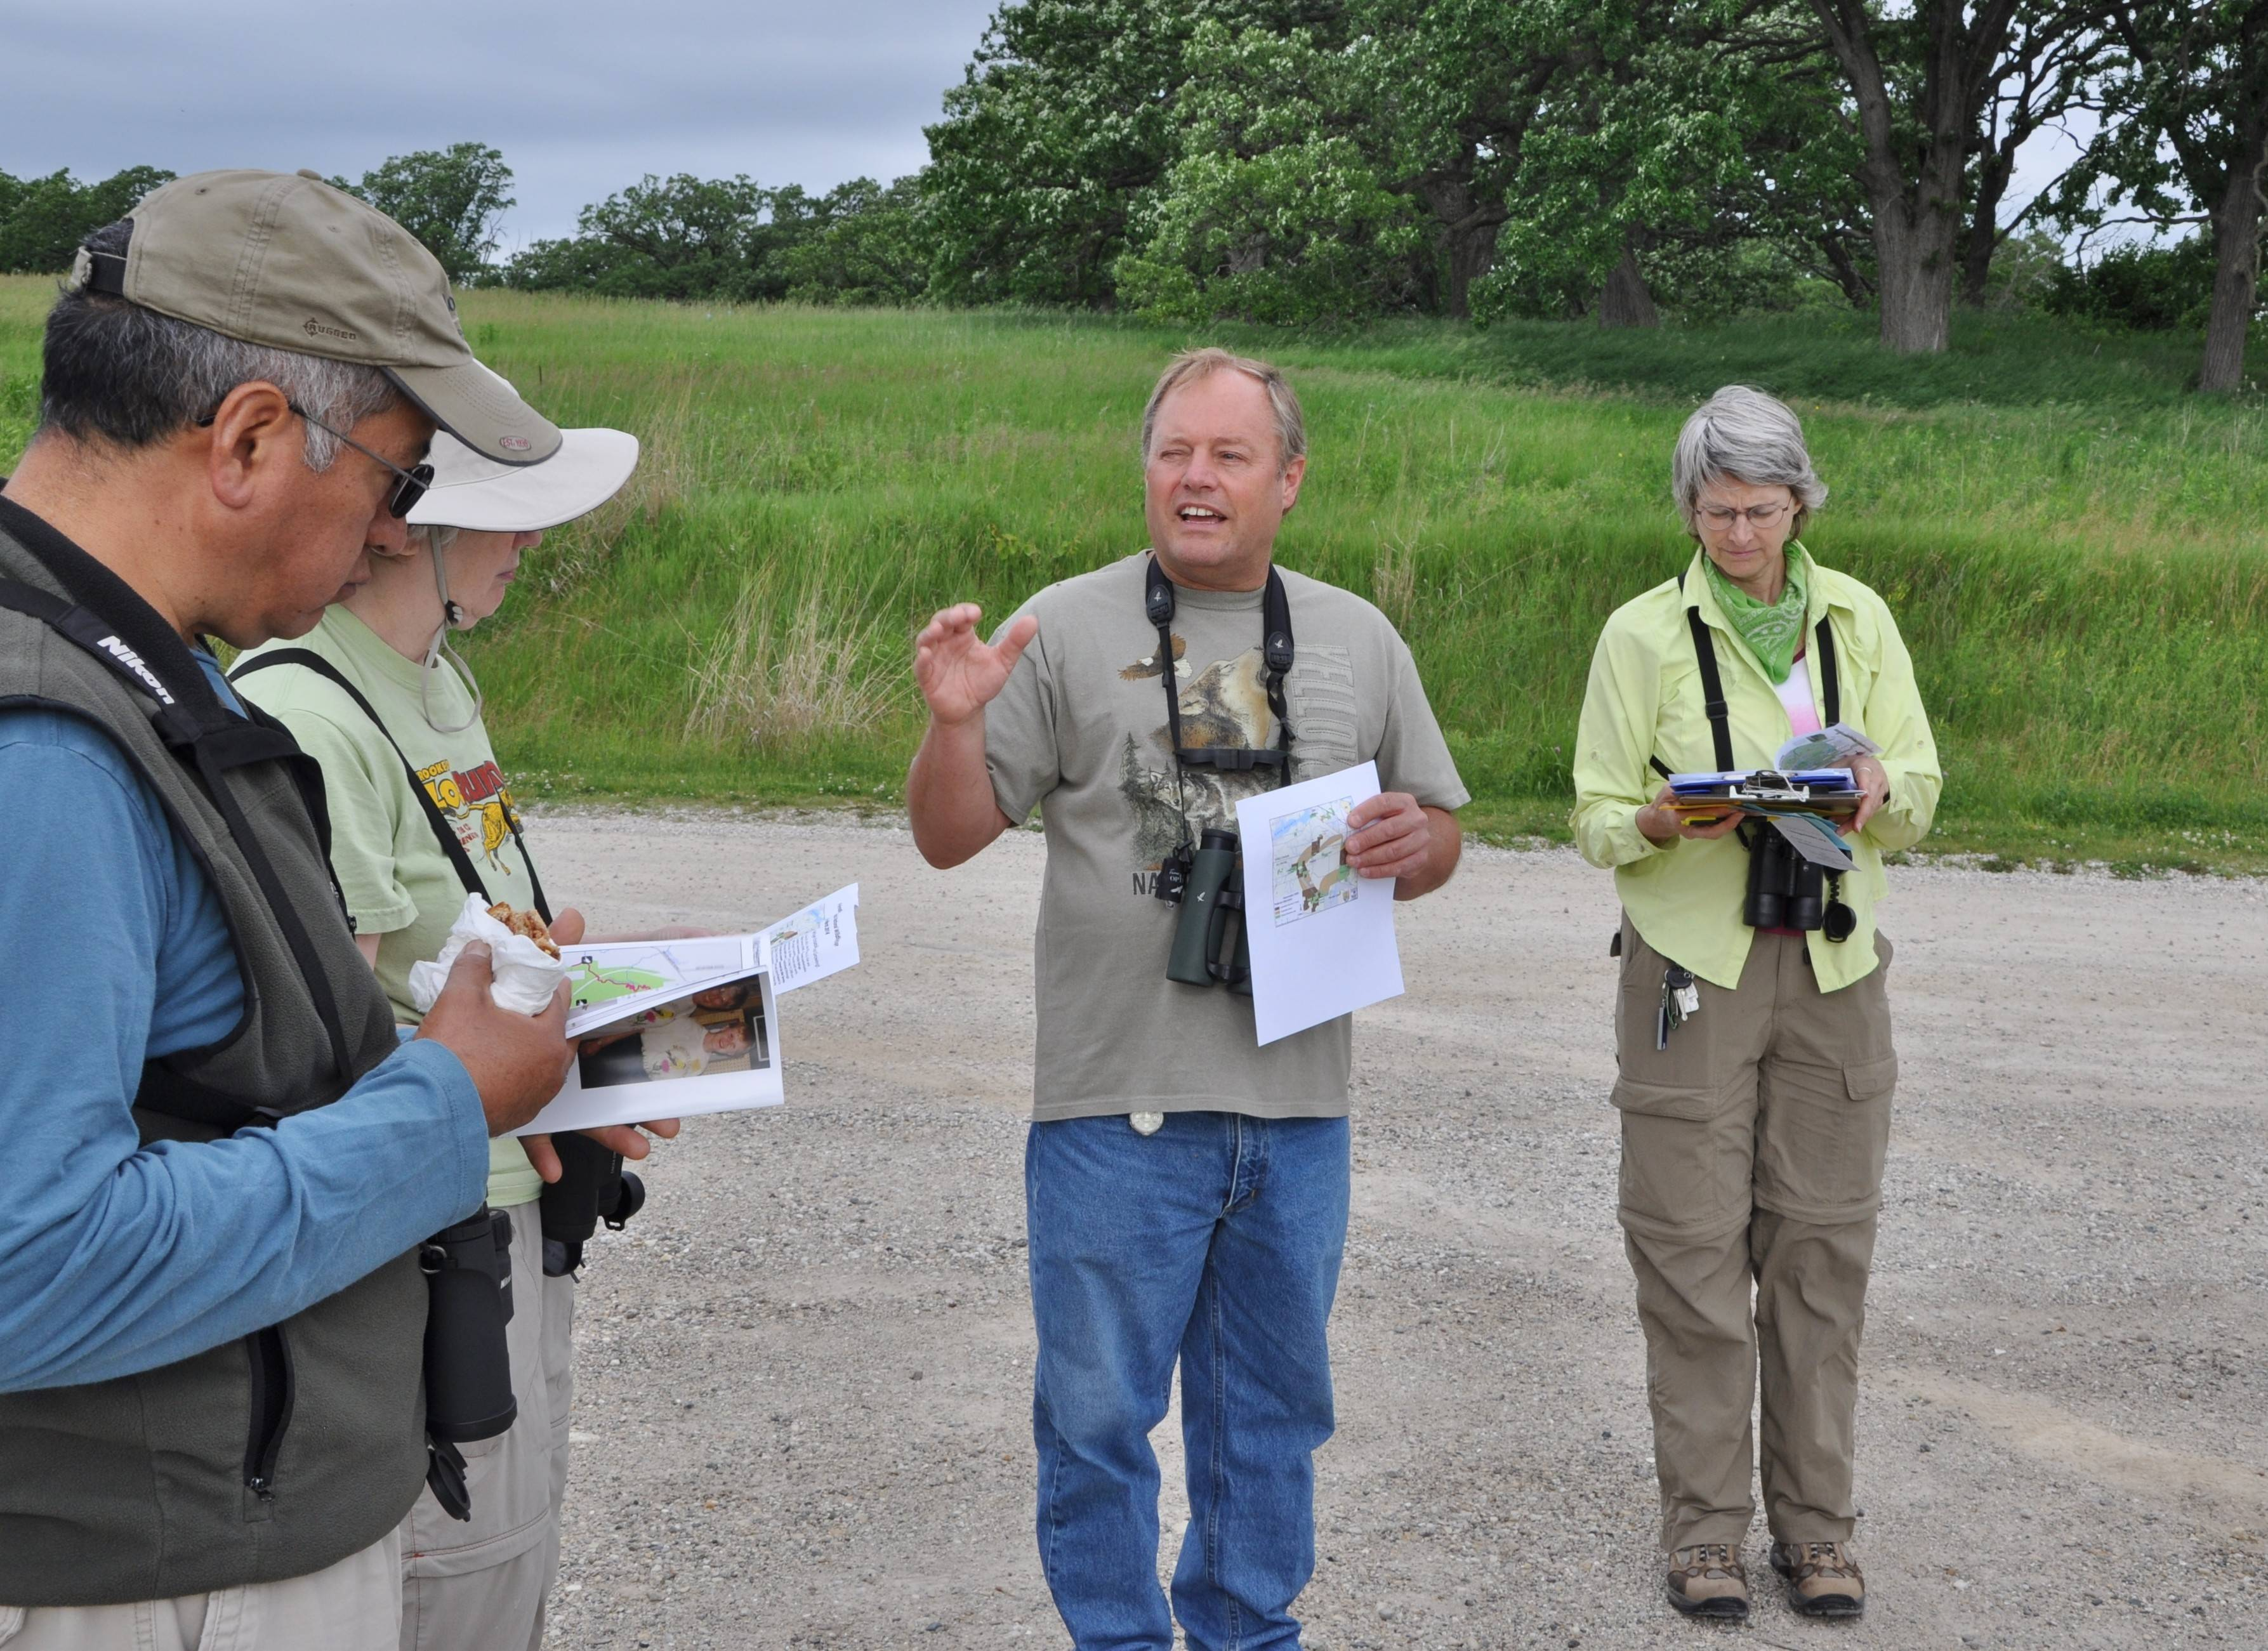 Randy Schietzelt, center, from McHenry County Audubon, gave an overview about Hackmatack National Wildlife Refuge before leading a birding walk. Nancy Tikalsky, right, president of Chicago Ornithological Society, was part of the walk.